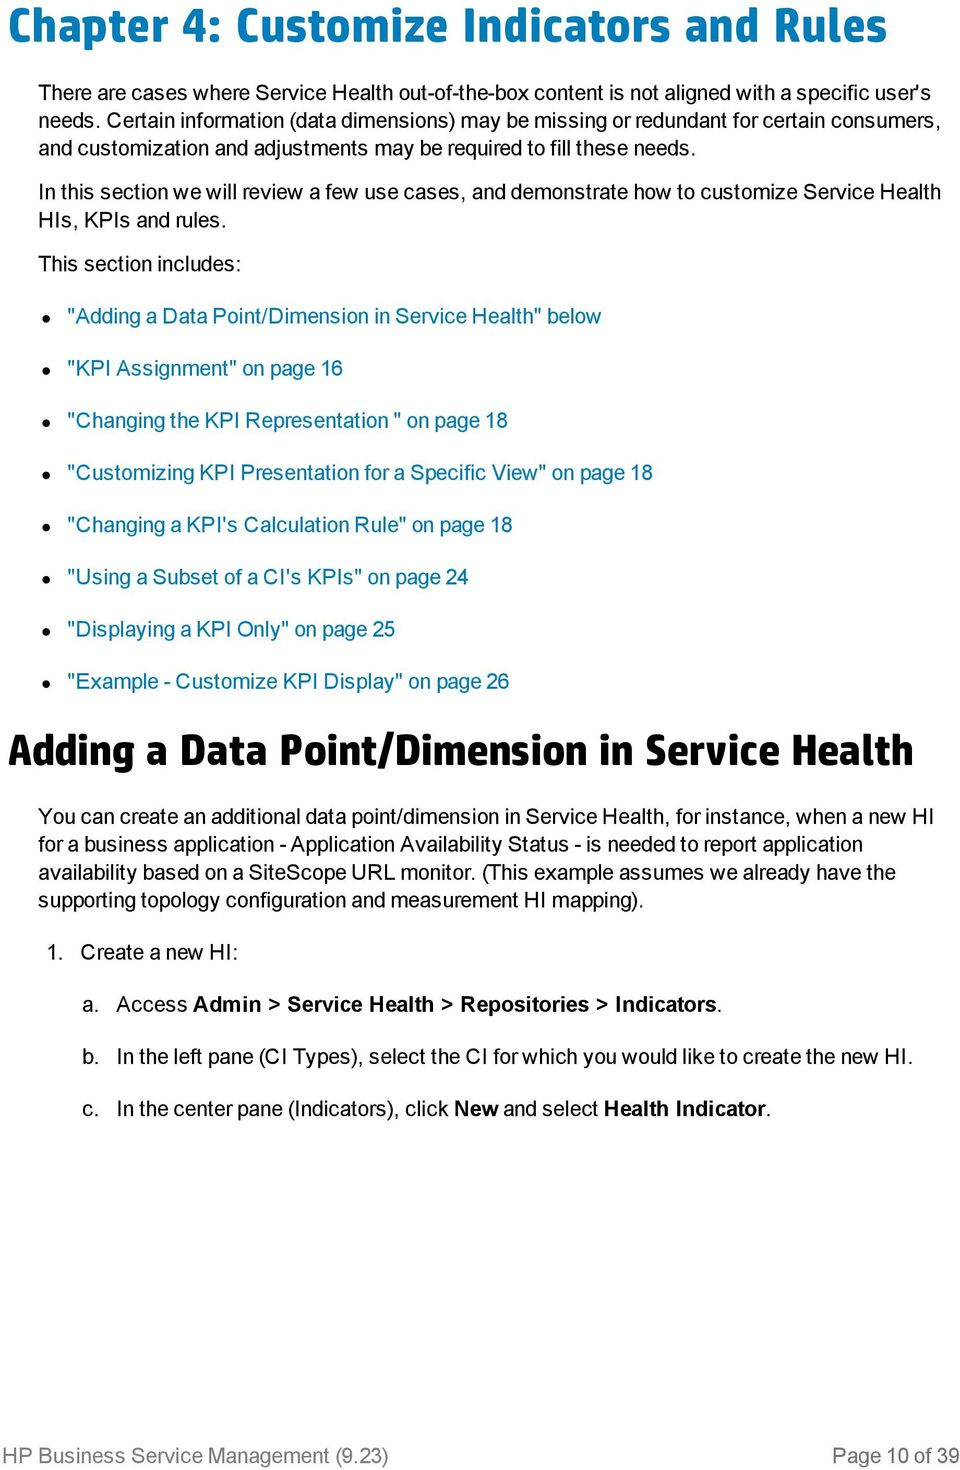 In this section we will review a few use cases, and demonstrate how to customize Service Health HIs, KPIs and rules.